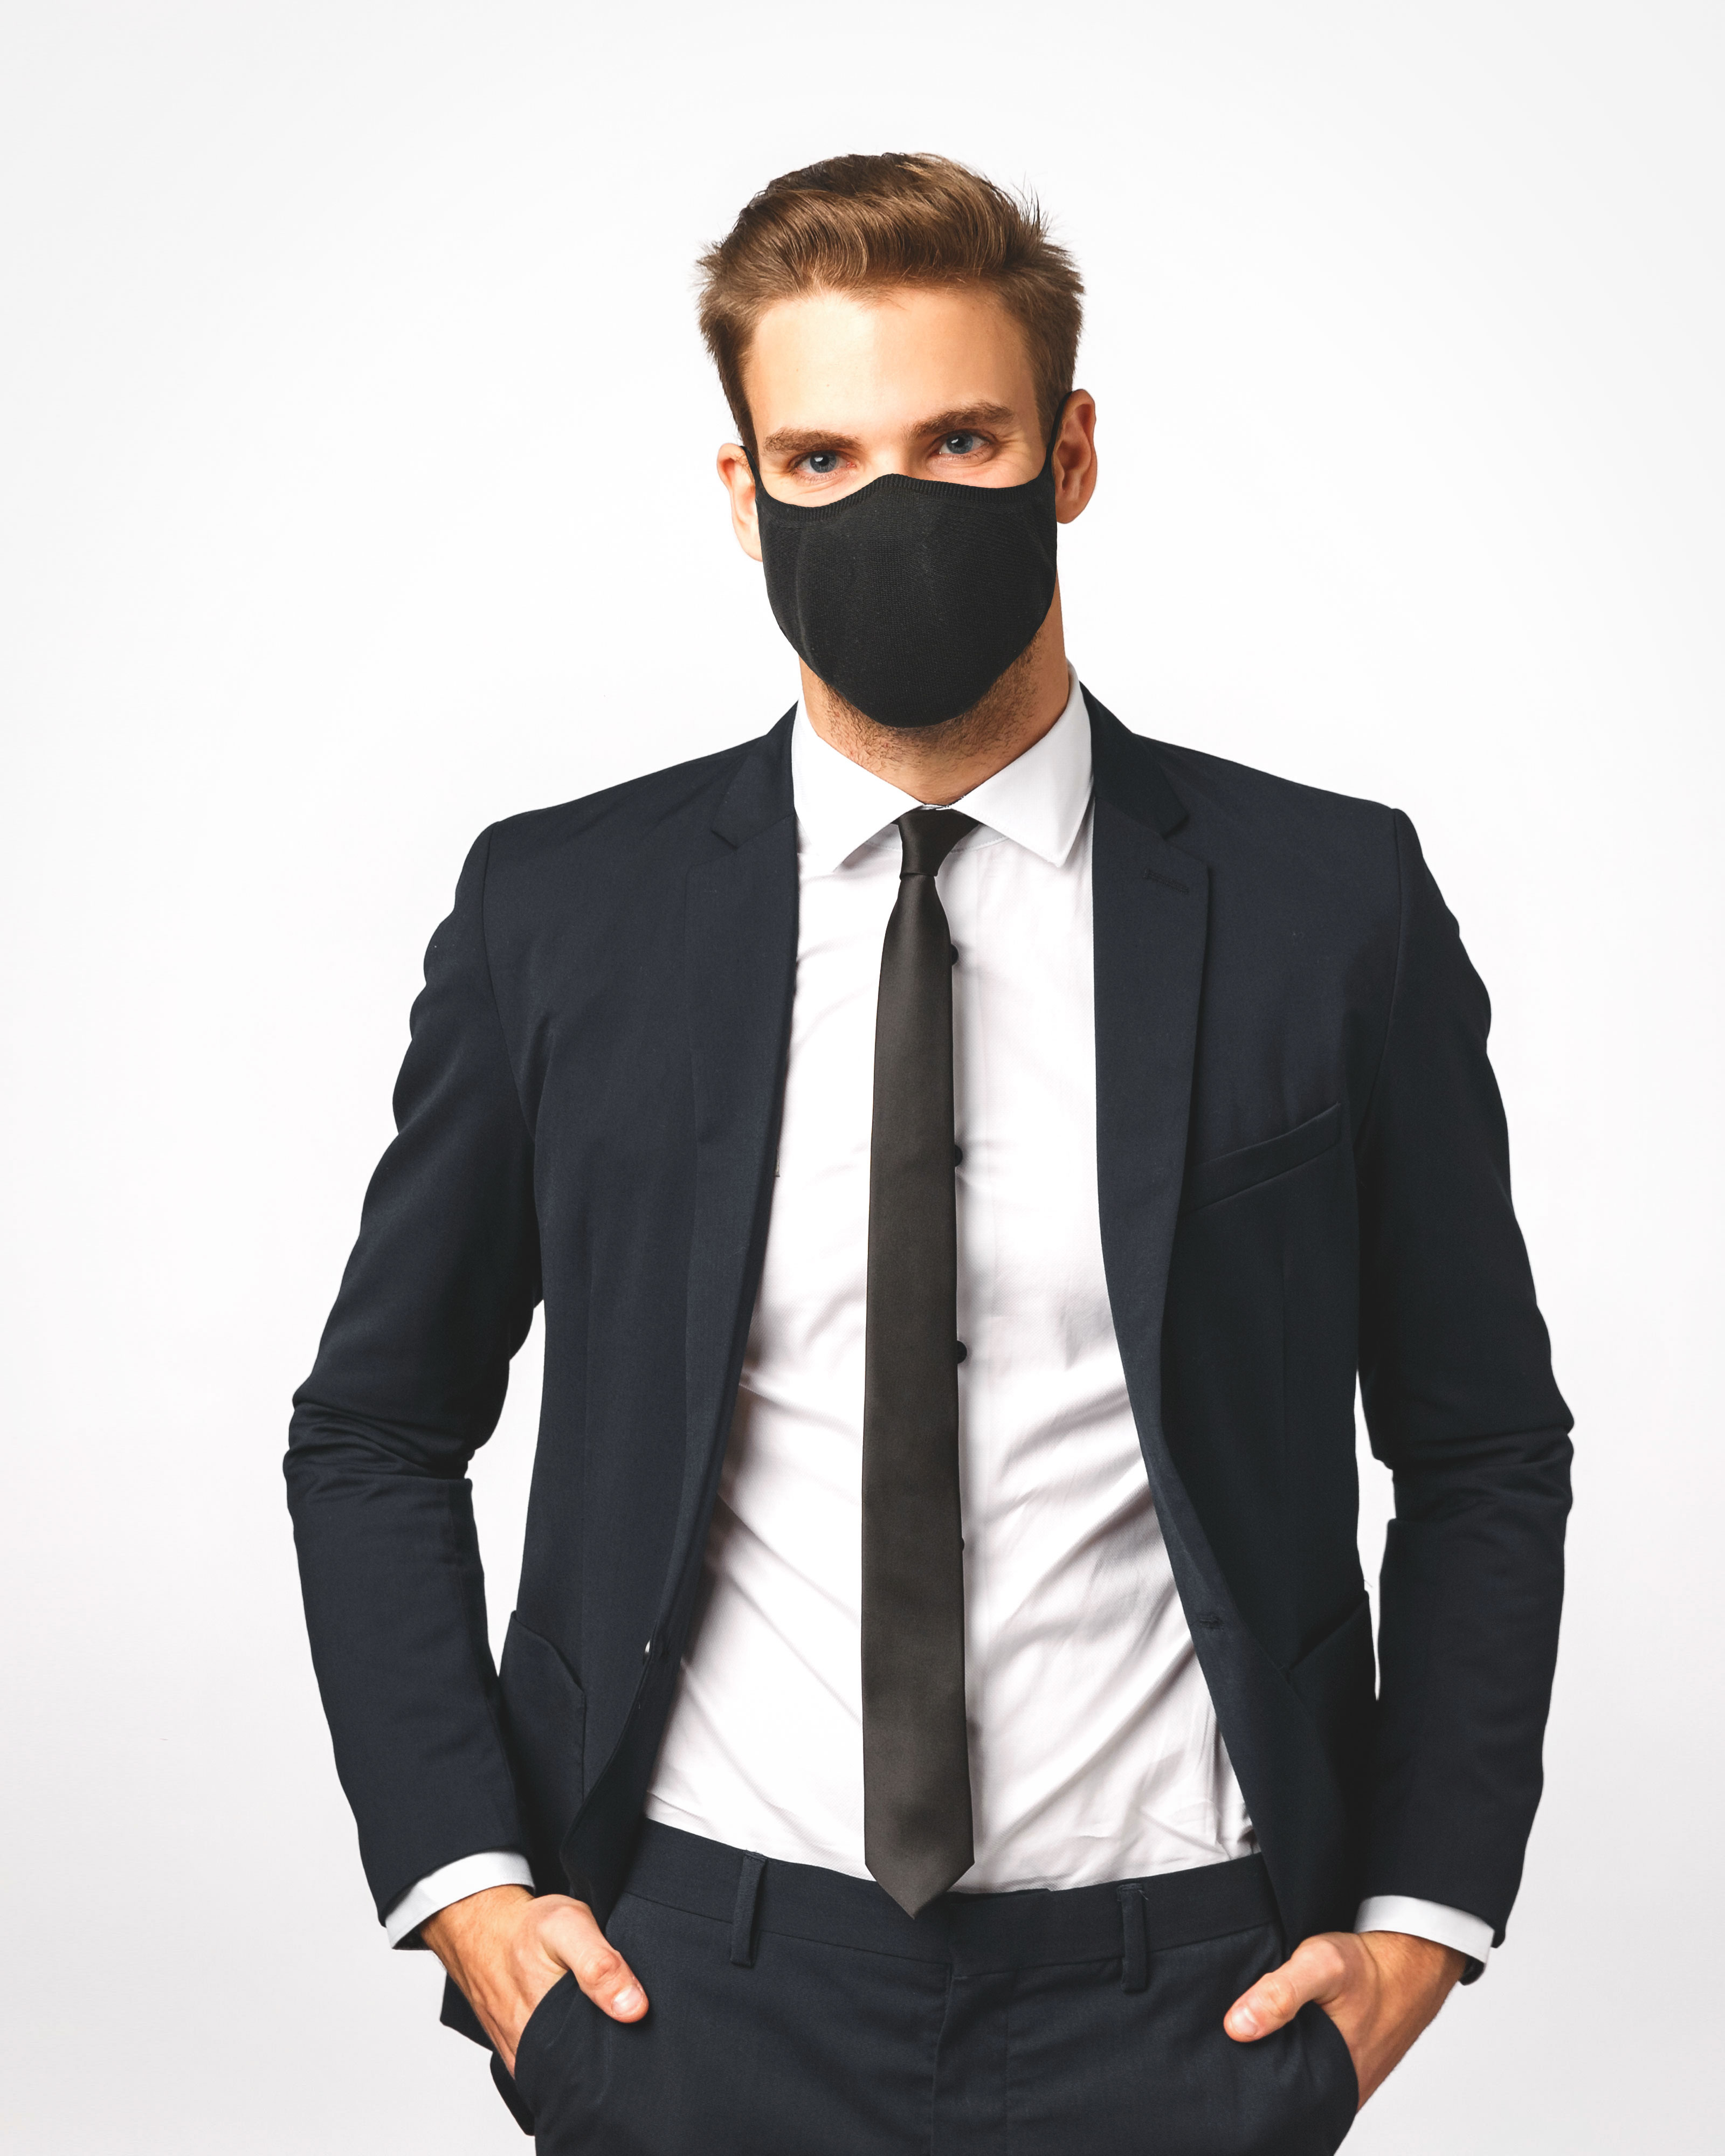 MASK-01S-relaxsan-unima_353-black-black_mask-business-man